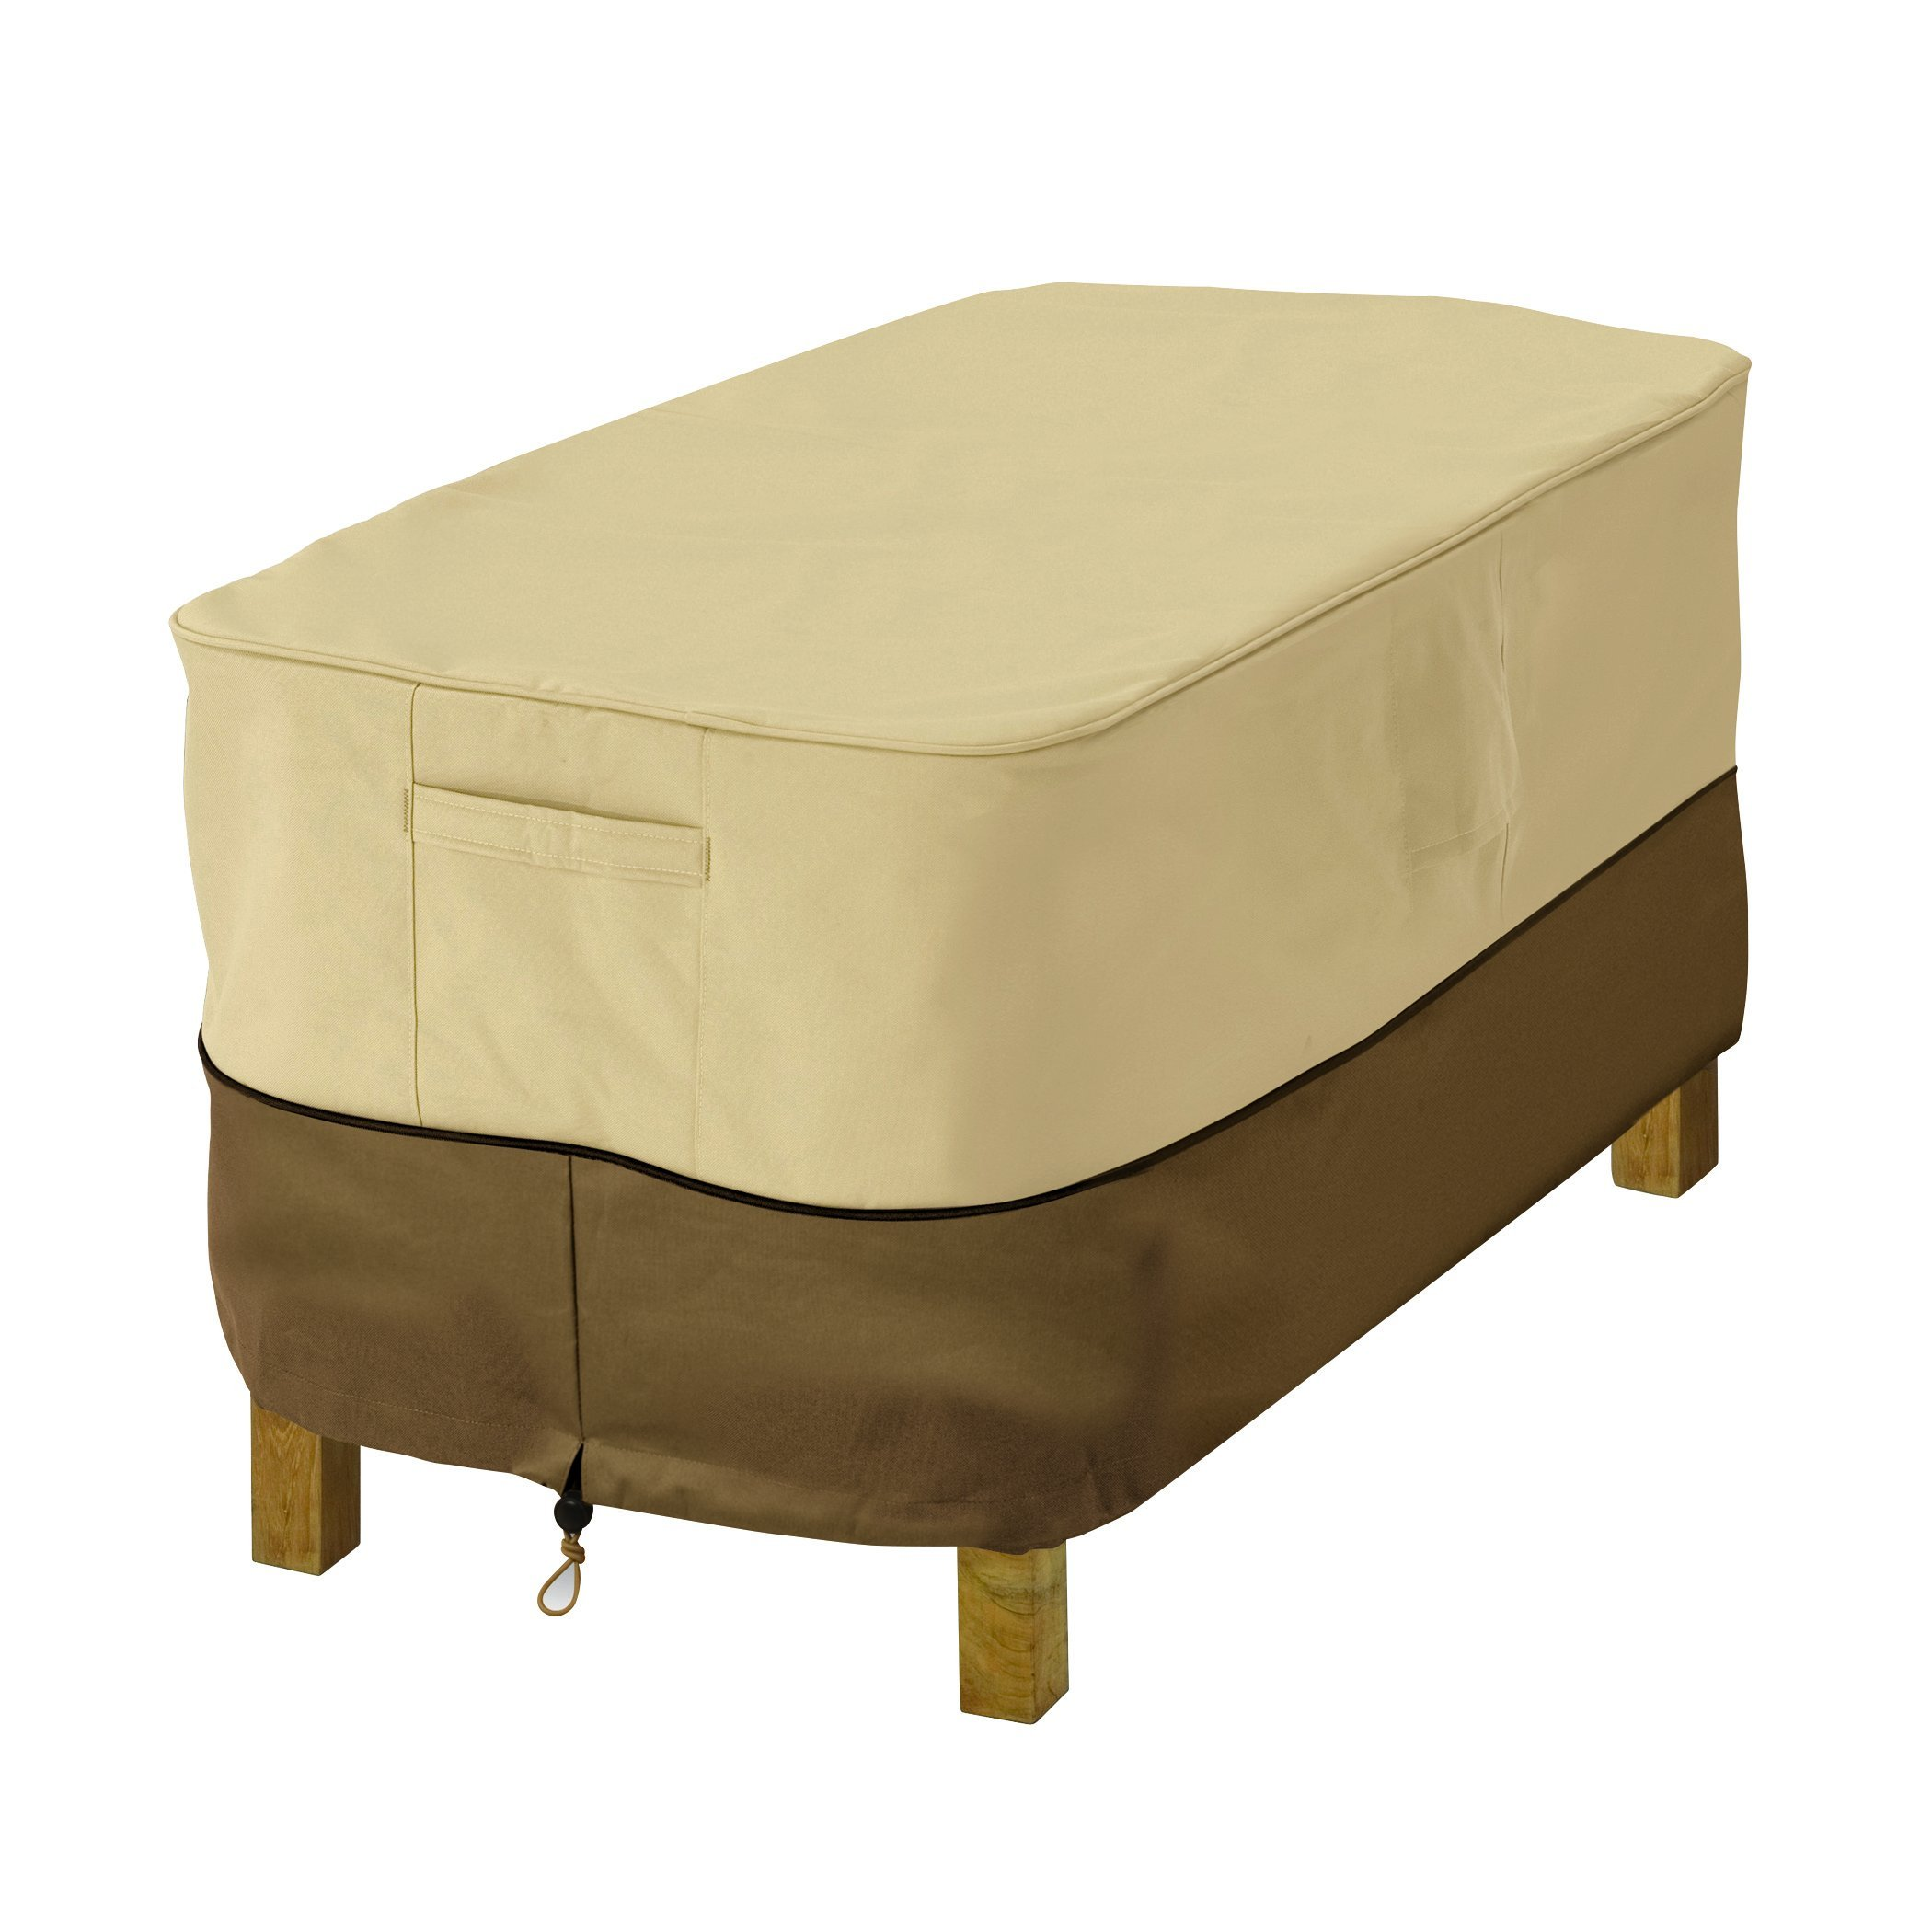 Classic Accessories Veranda Water-Resistant 26 Inch Rectangular Patio Ottoman/Side Table Cover